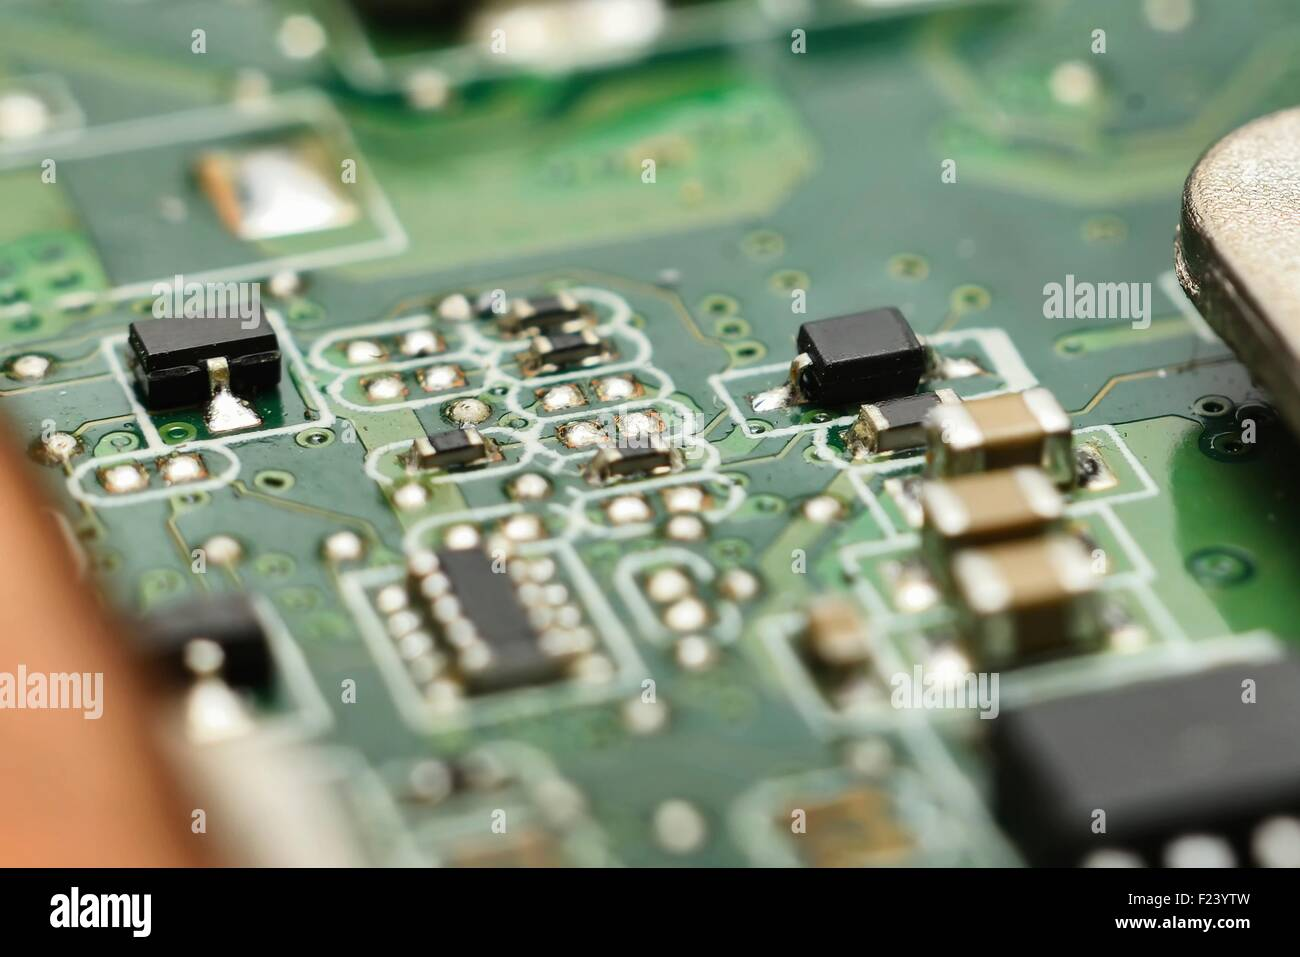 micro electronics main board with processors, diodes, transistors (develop and manufacturing electronics background) - Stock Image